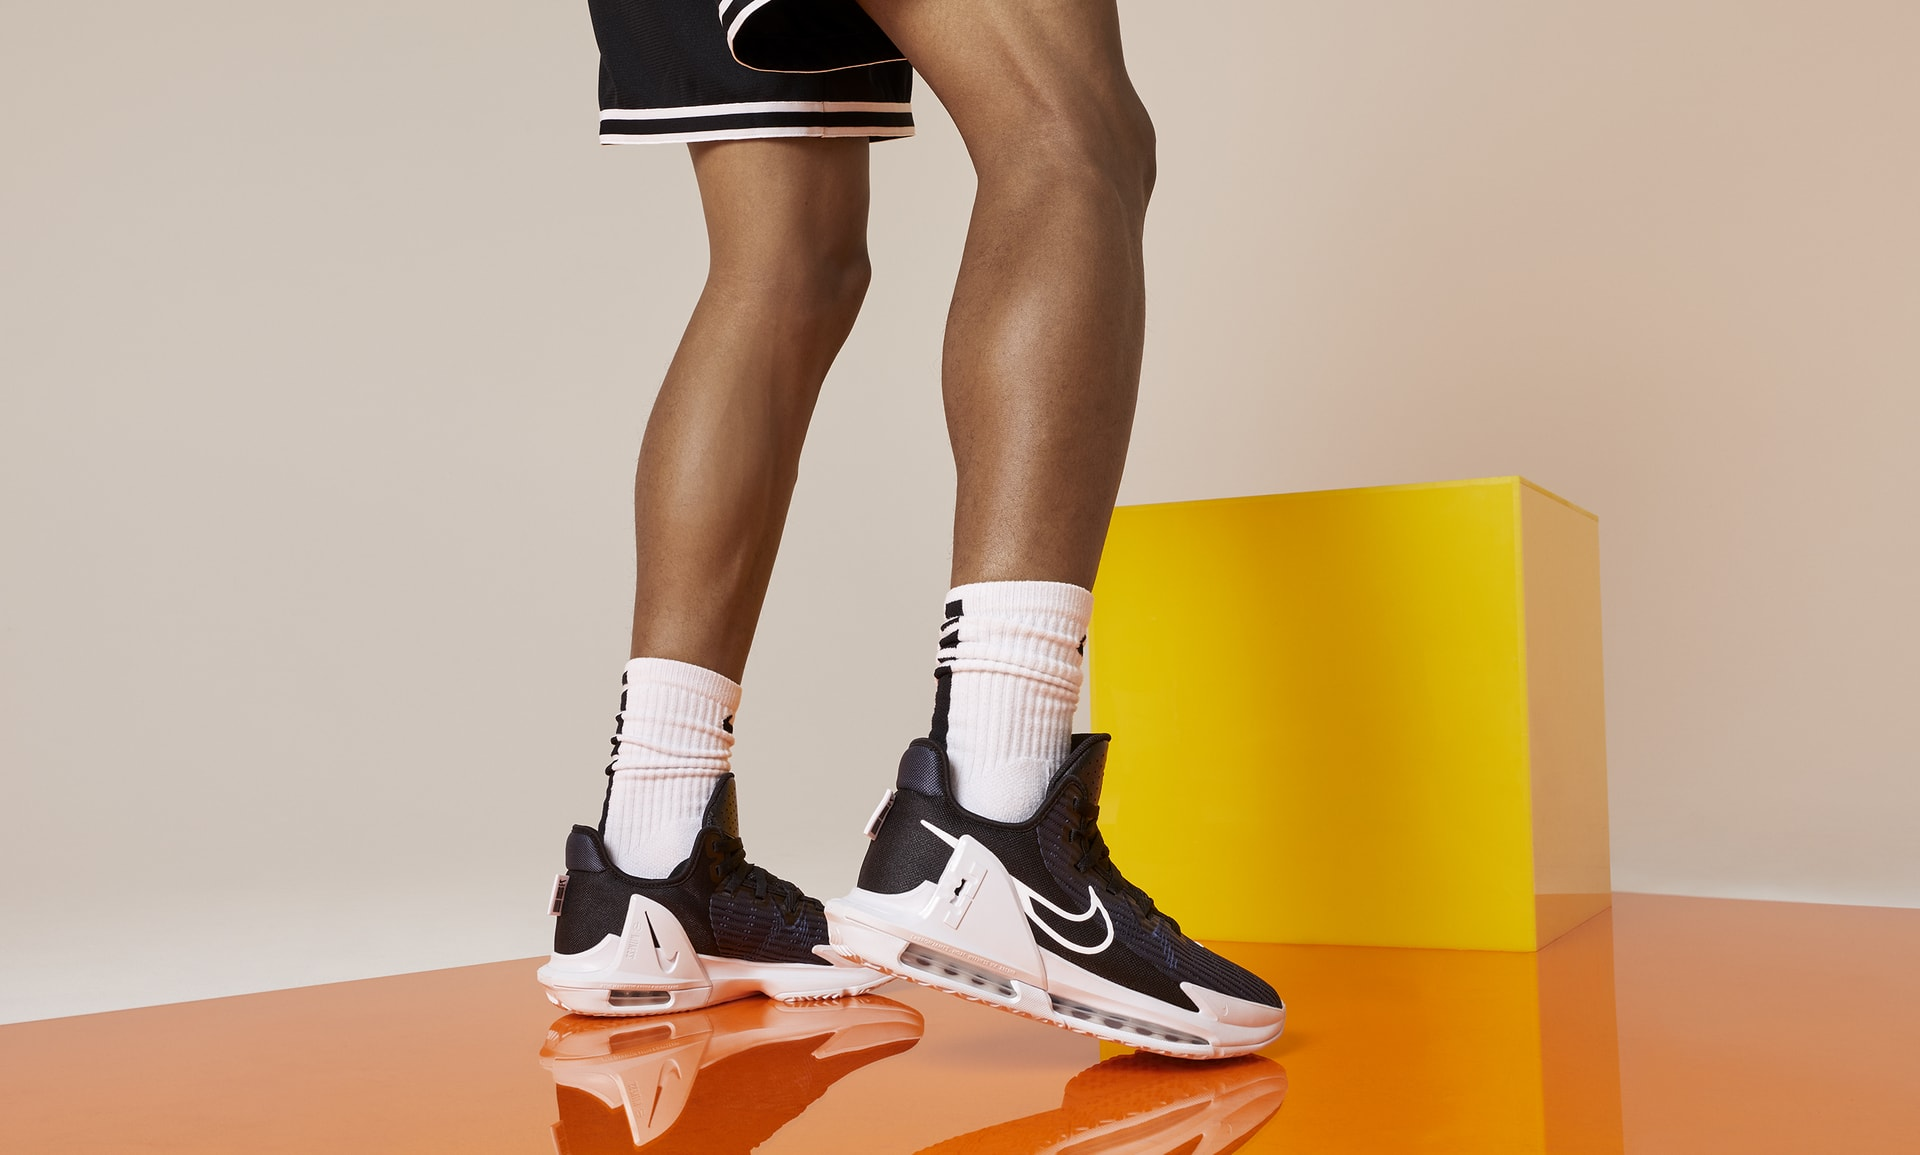 Nike Lebron Witness 6 - Adhérence à chevrons exceptionnelle